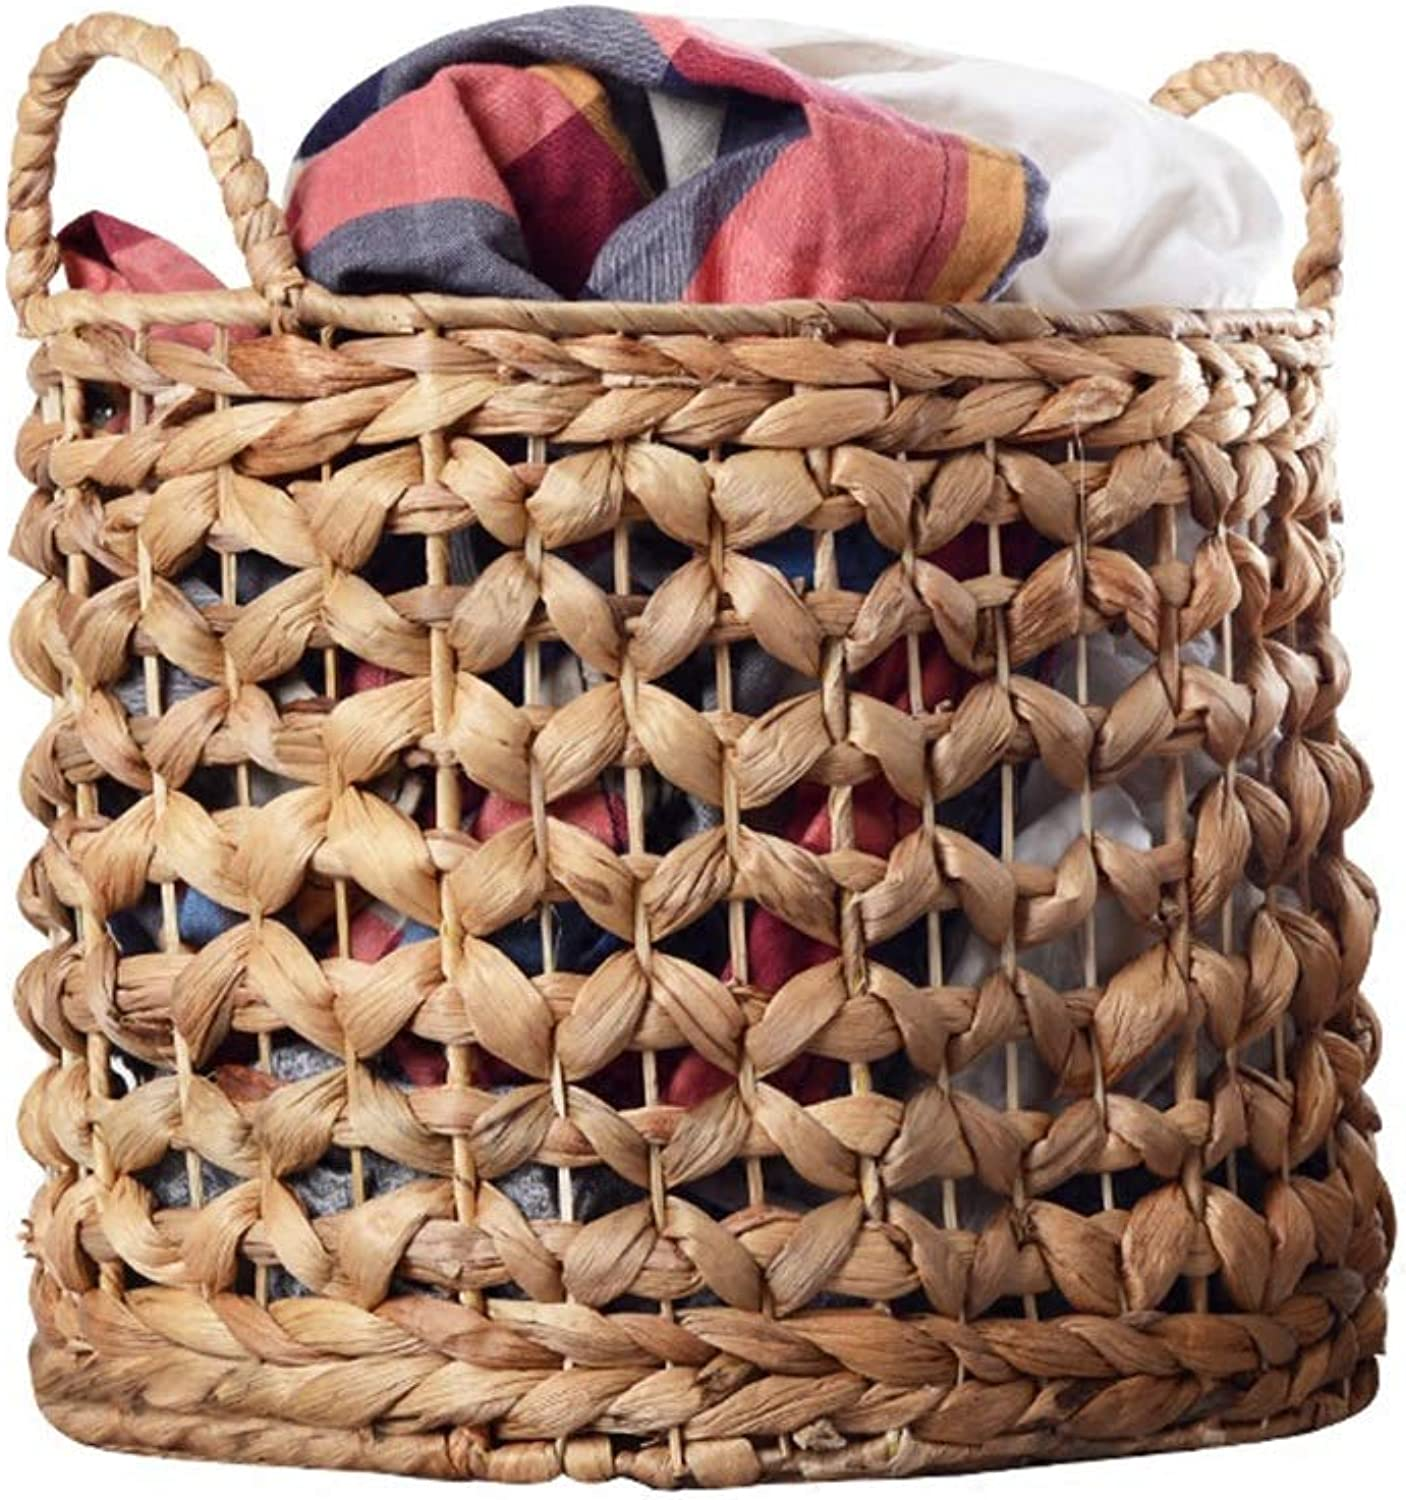 ZHANGQIANG Storage Basket Laundry Basket Medium Round Laundry Linen Willow Wicker Basket with Lining (color   Wood color, Size   A)